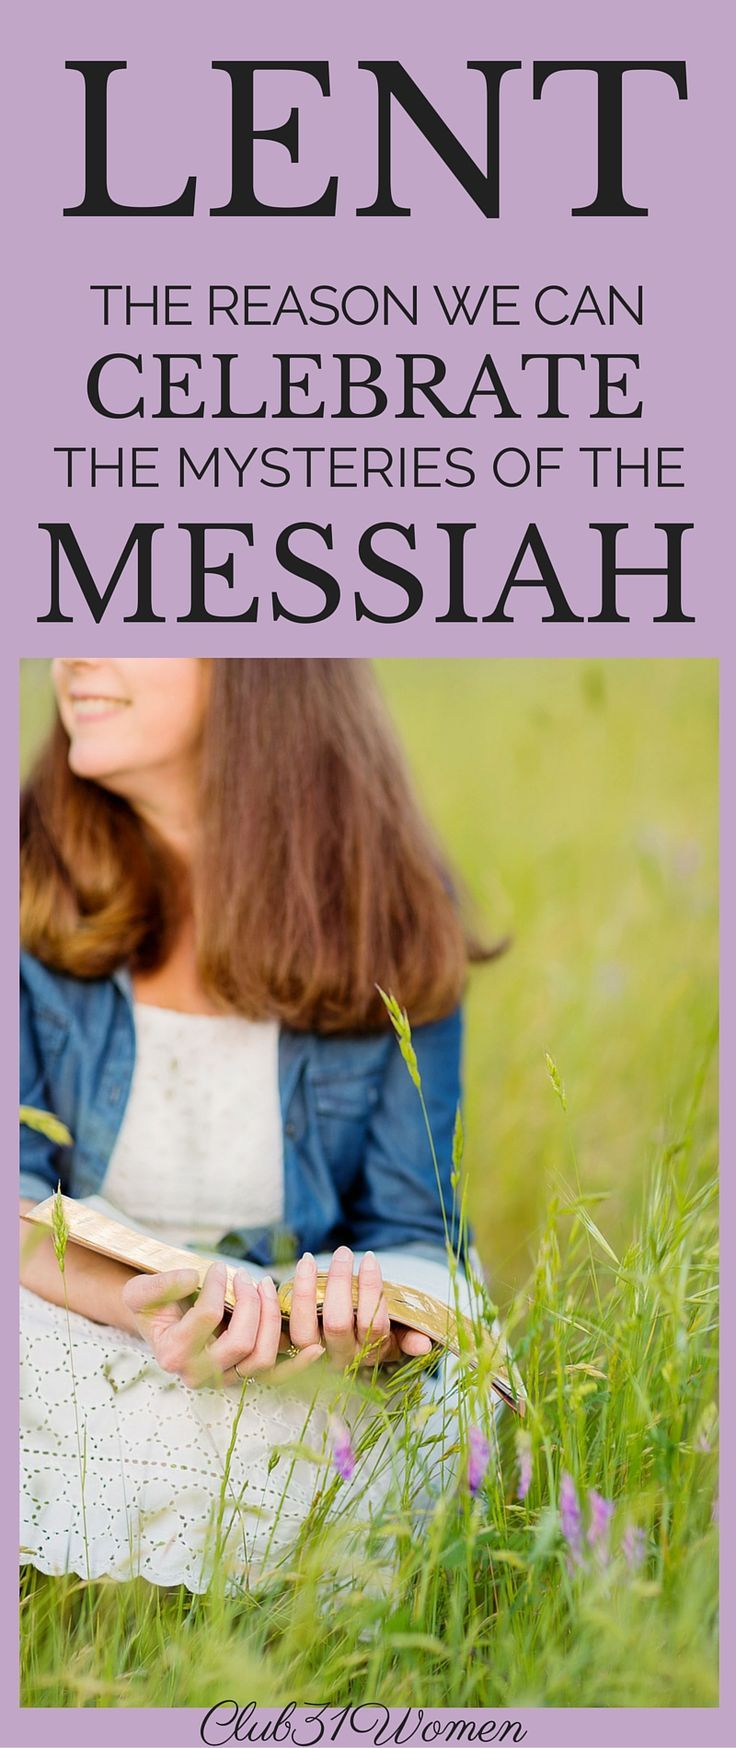 Does your family know about why we celebrate the risen Messiah? As Lent season approaches, take the time to teach them about the God who we await. Share with them how, because of this Messiah - when everything seems awry - we can know that a God who knows what He is doing is a good and loving Father. ~ Club31Women